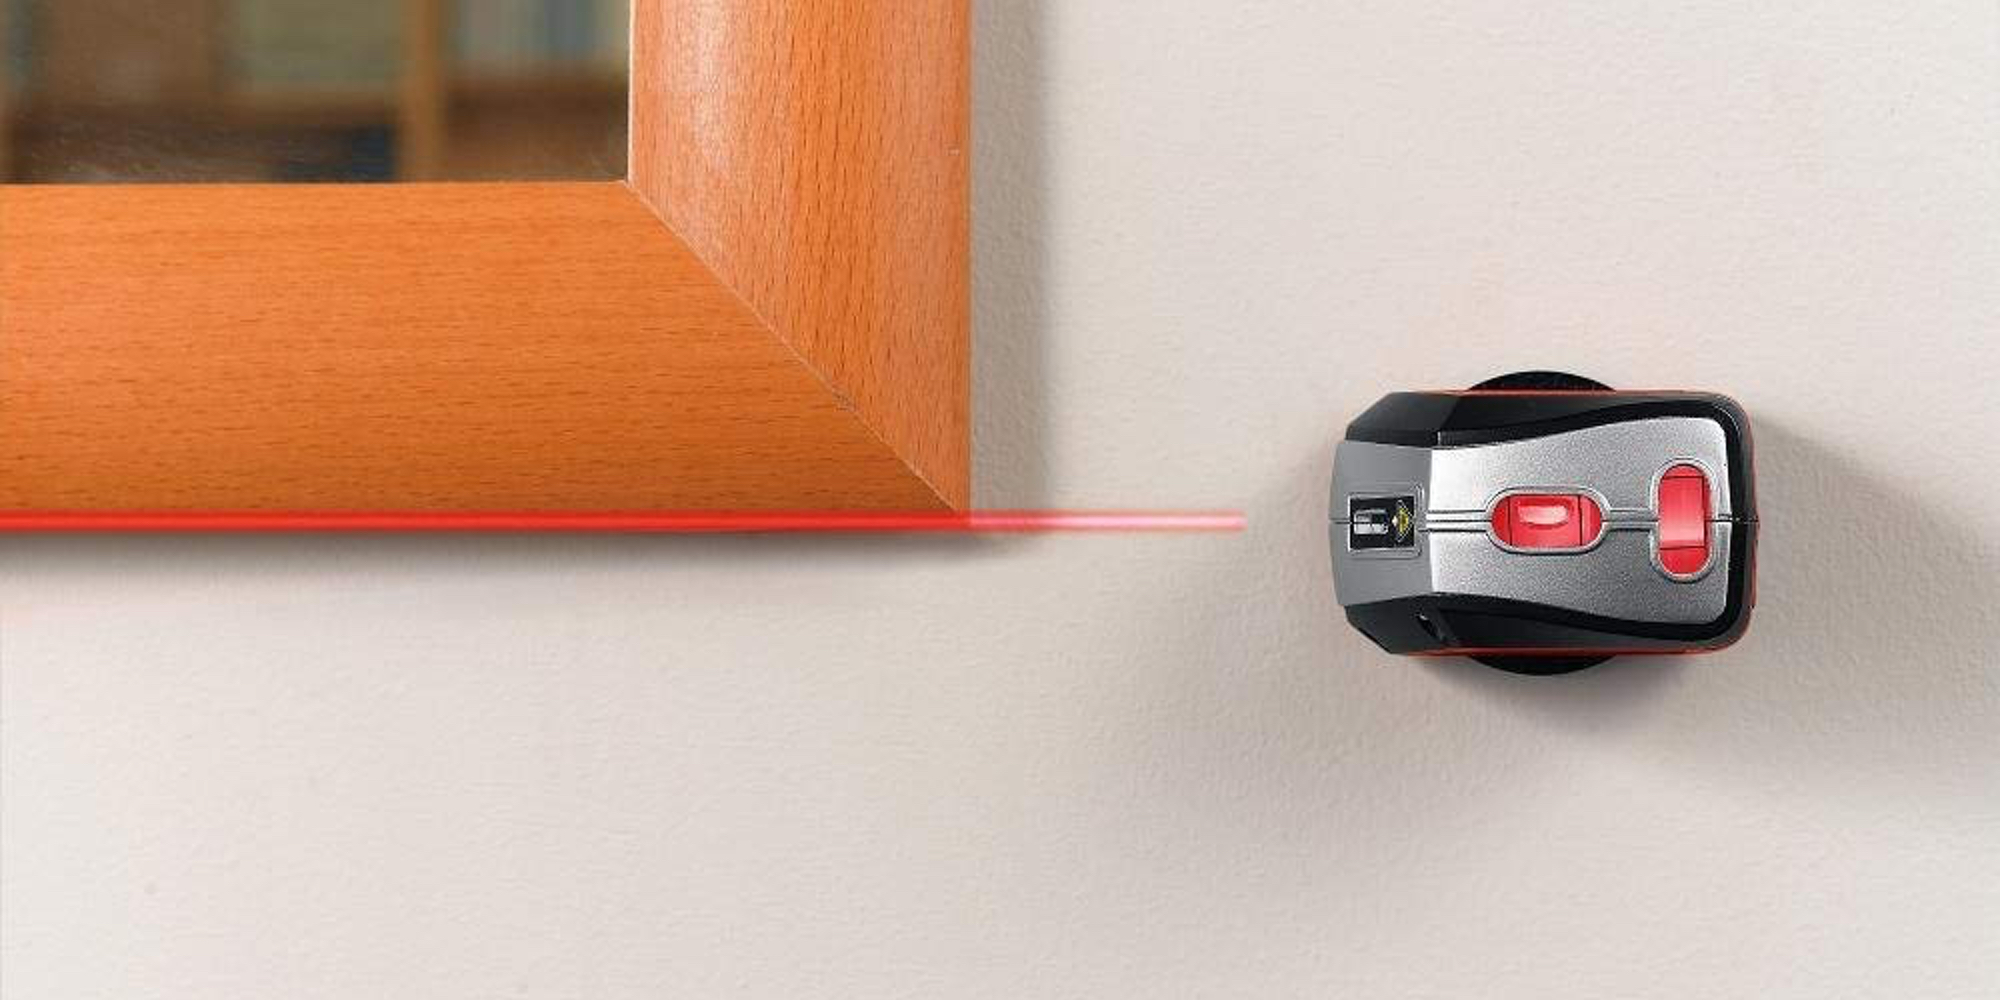 BLACK+DECKER's $11 Laser Level lends a helping hand for home improvement projects (All-time low)